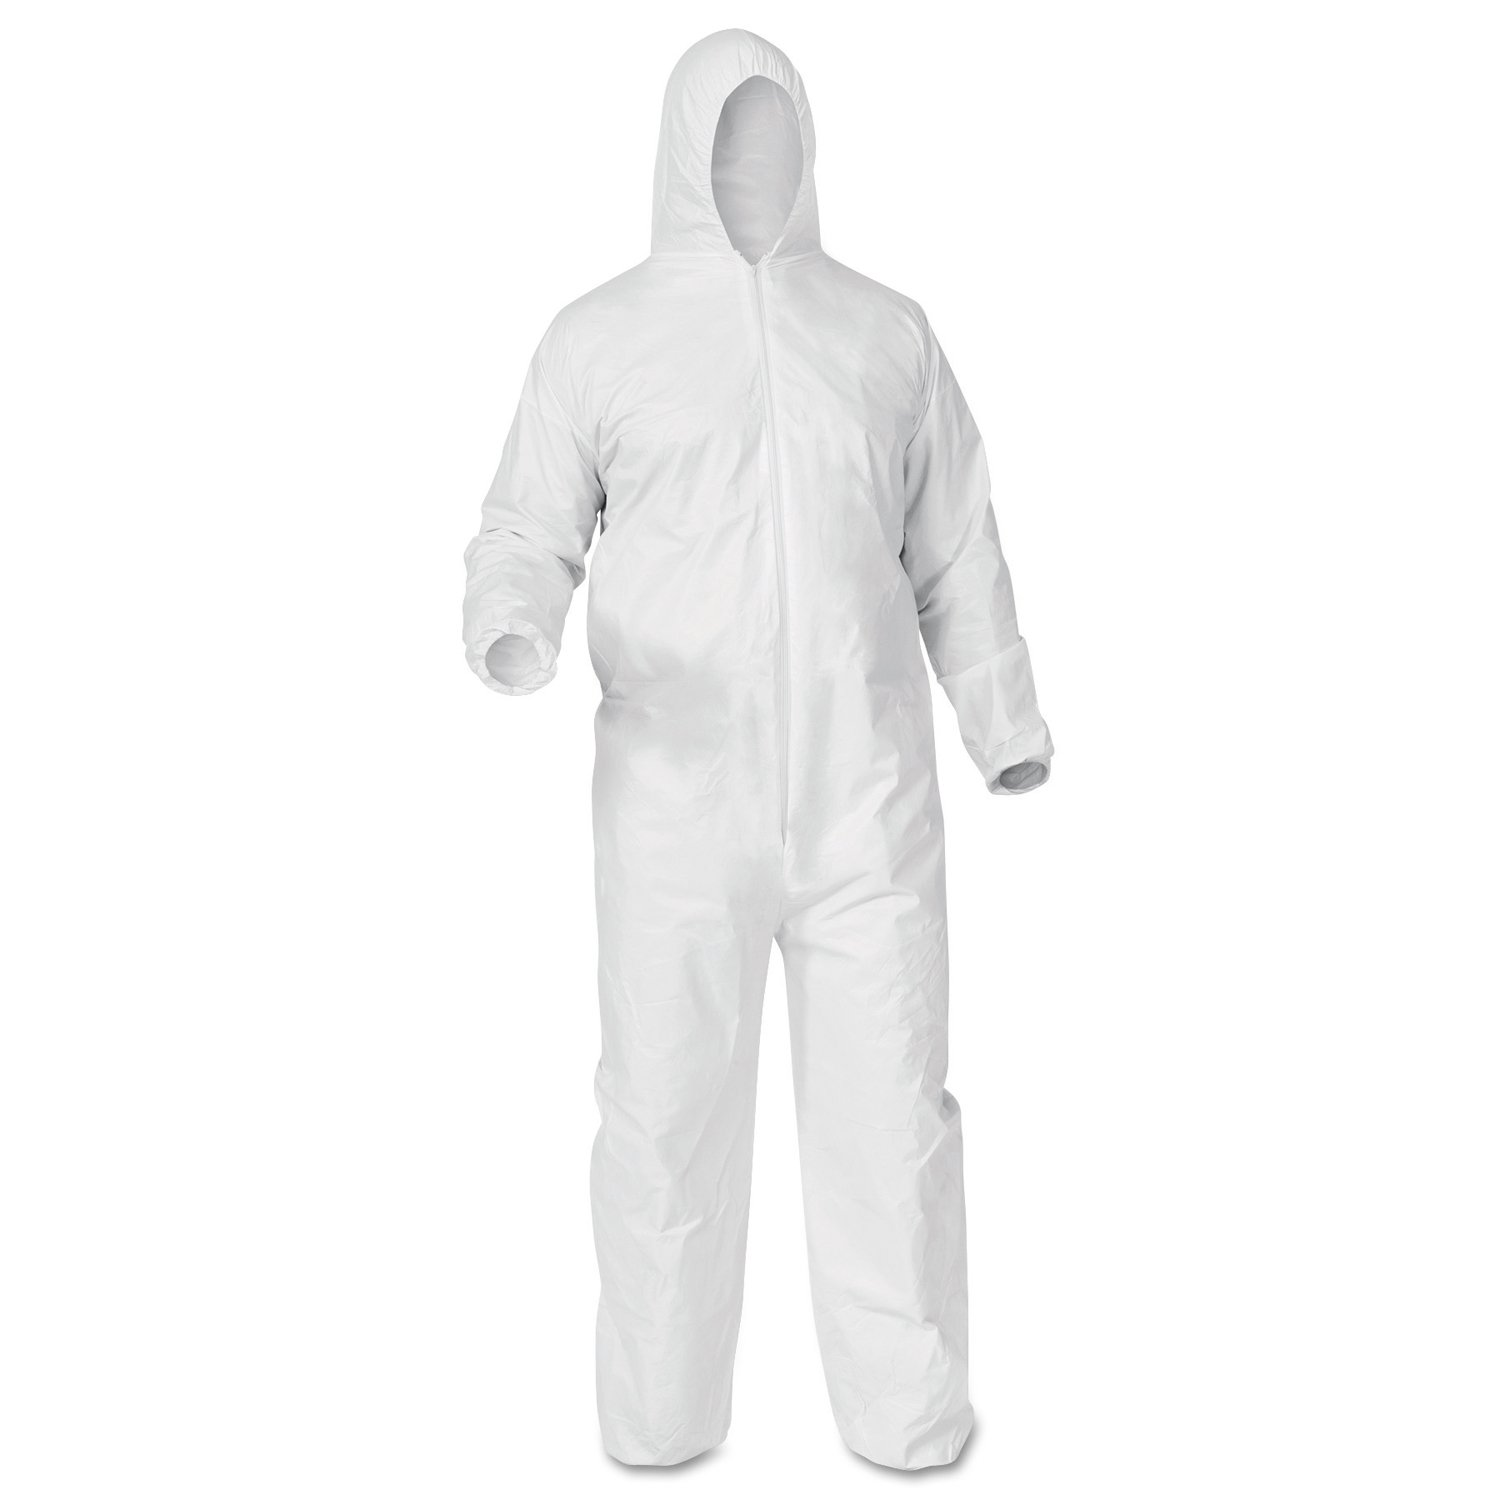 Kimberly-Clark Professional 38941 KLEENGUARD A35 Coveralls, Hood, Elastic Wrist/Ankles, White, XX-Large